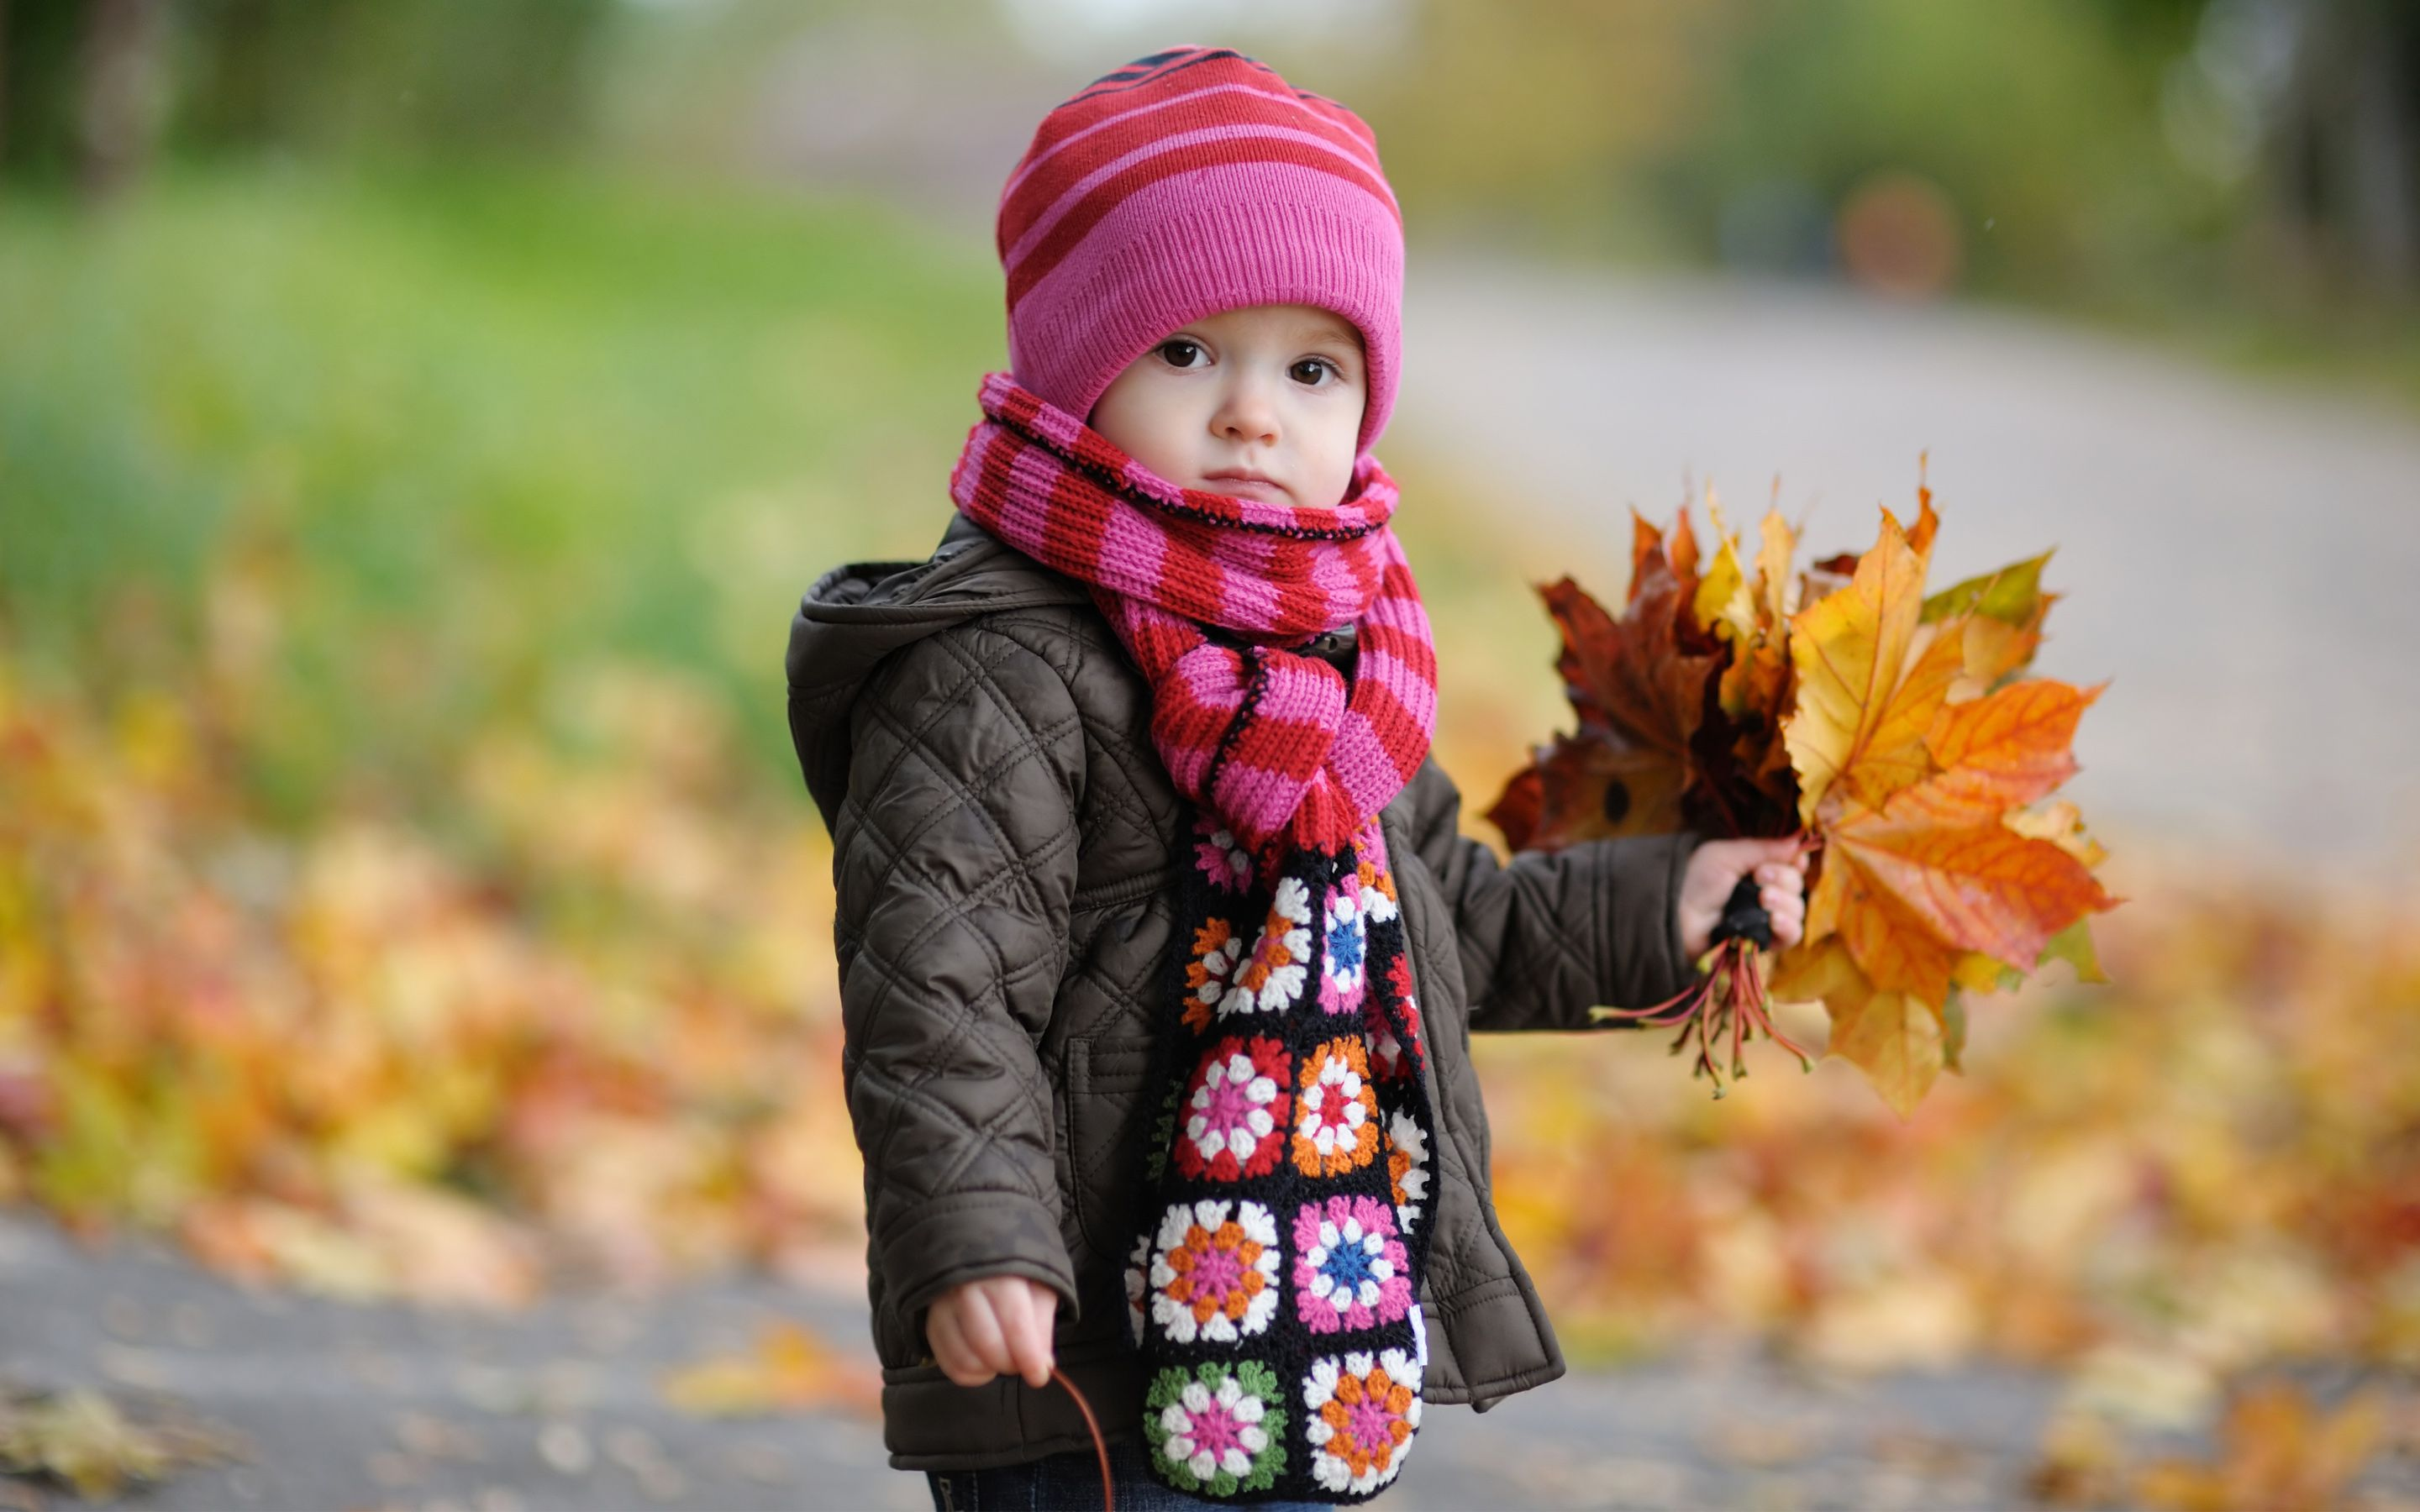 18 Tricks That People Were Flabbergasted Actually Worked Cute Baby Wallpaper Cute Baby Girl Wallpaper Baby Girl Wallpaper